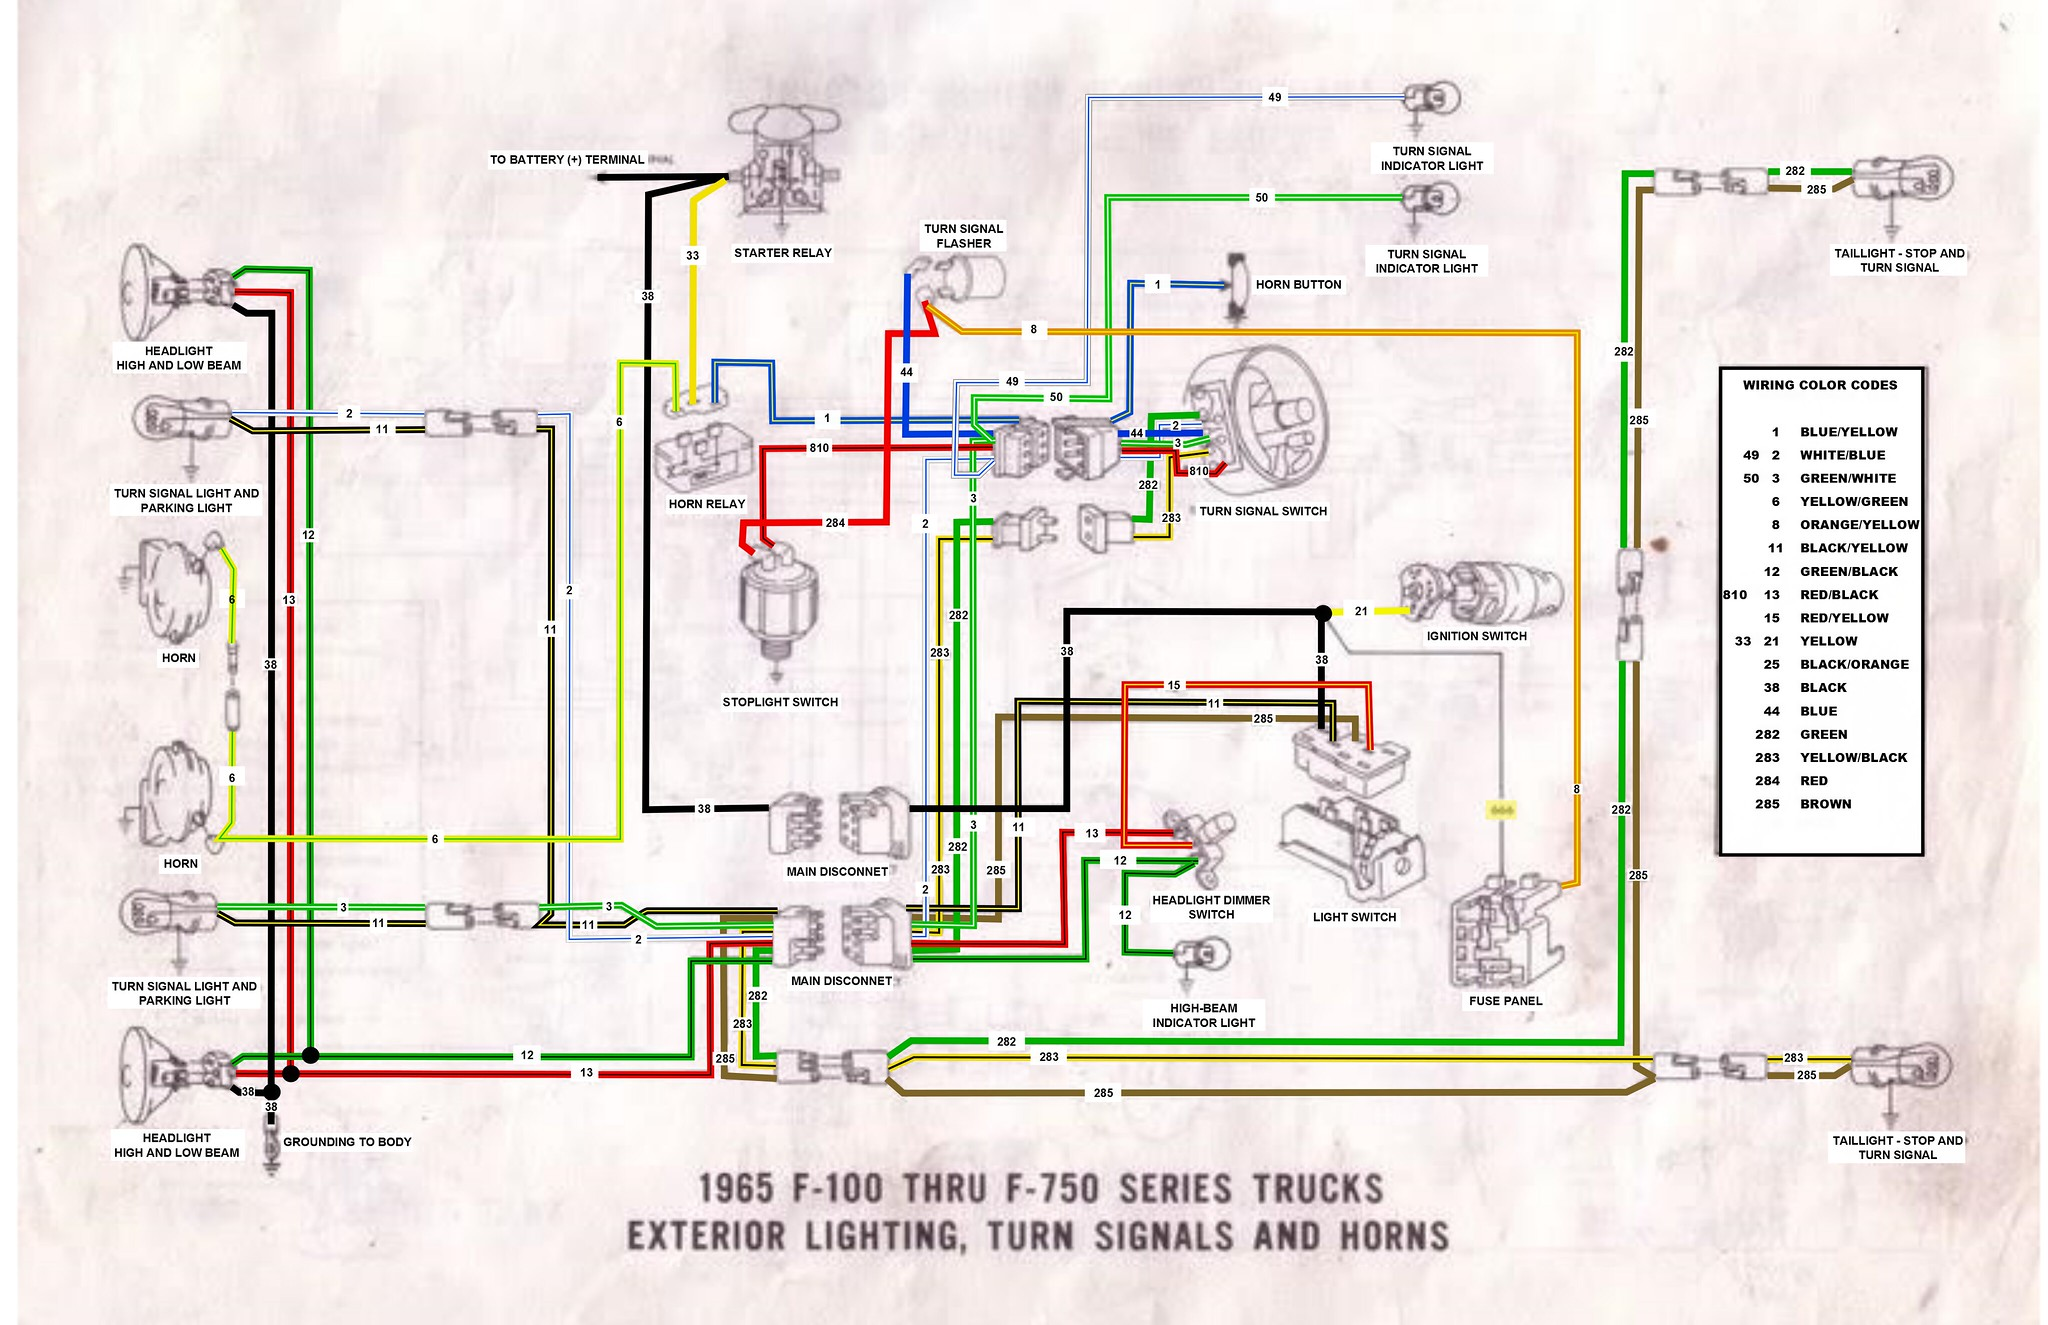 ford f650 wiring diagram johnson outboard ignition switch 2014 f750 upfitter switches how to super hight resolution of diagrams scematic 2007 harness 2015